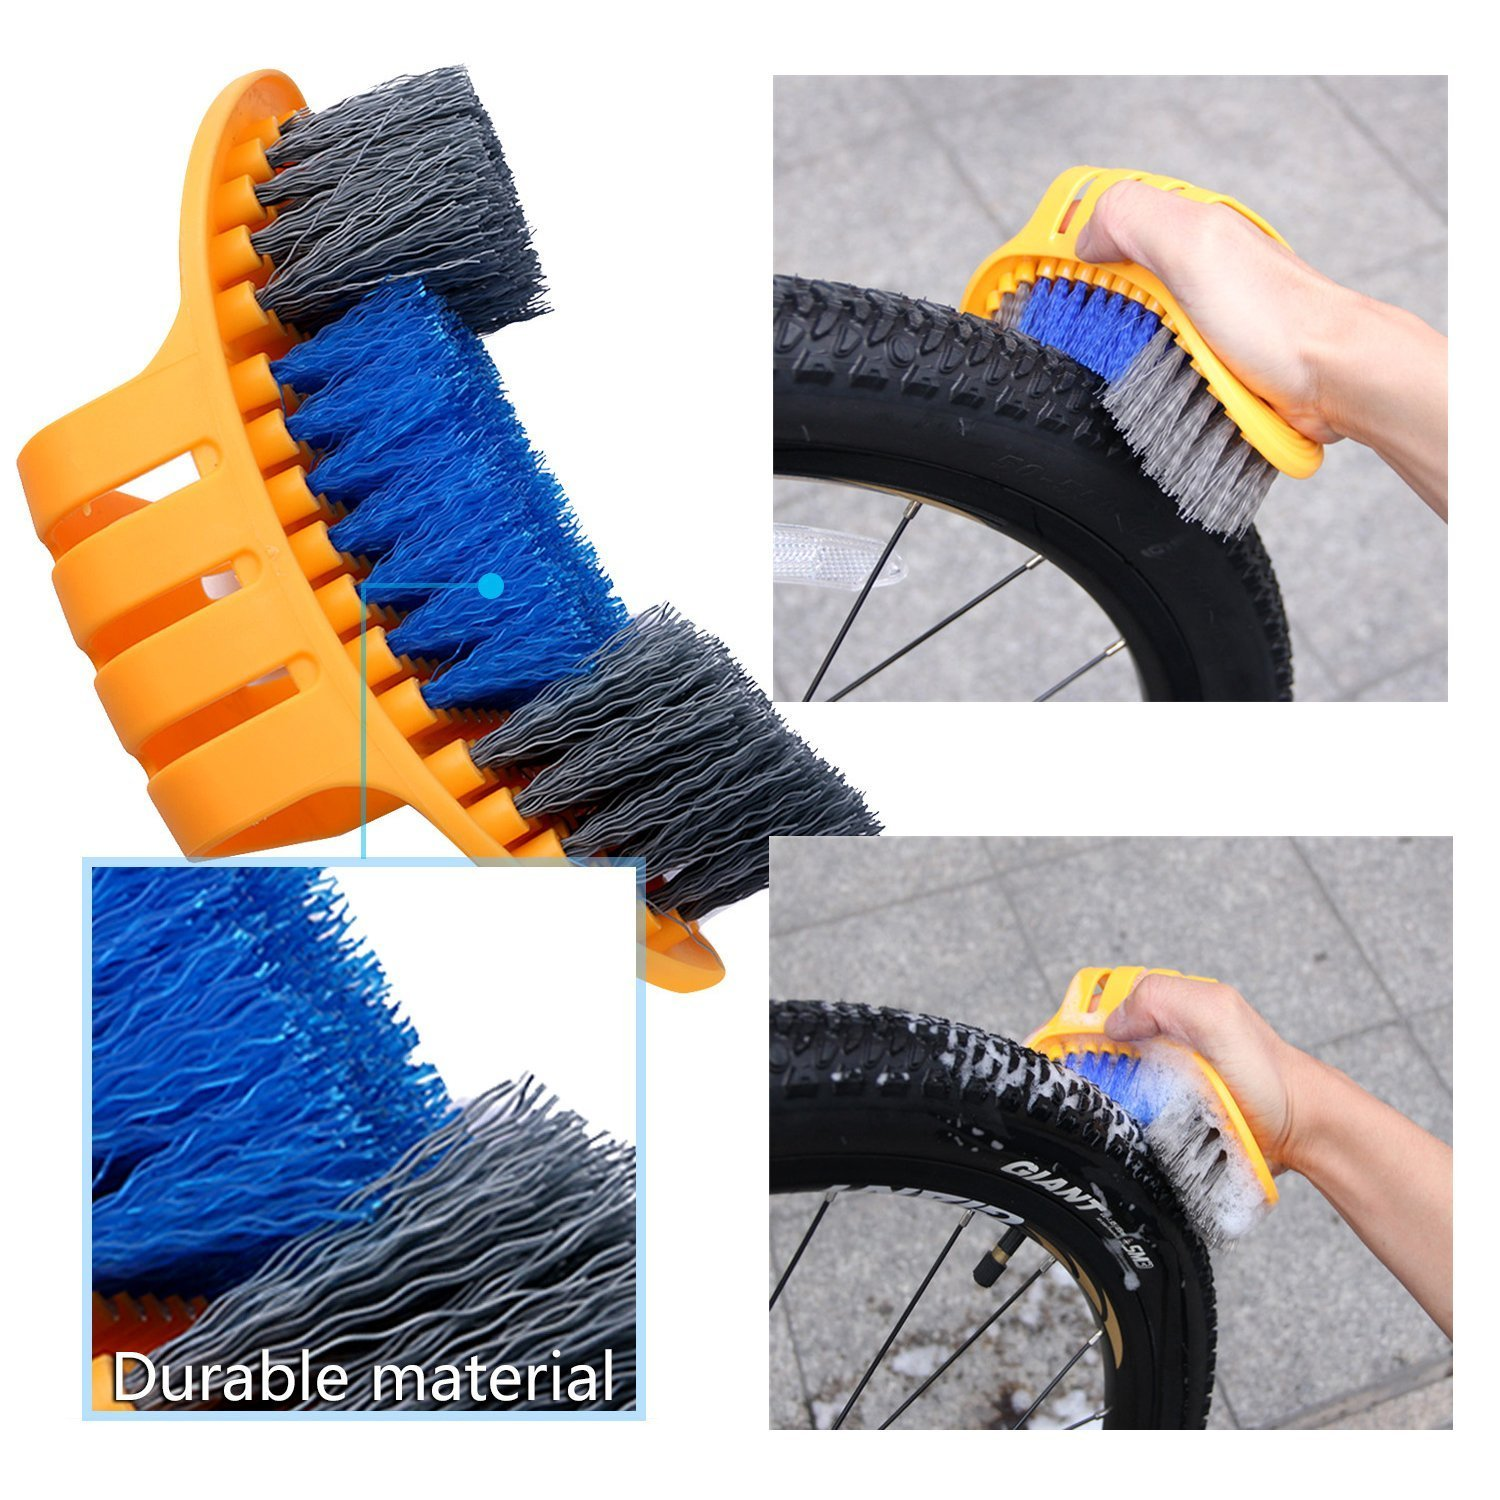 Oumers Bike Cleaning Tools Set (10 Pack), Bicycle Clean Brush Kit Make Mountain, Road, City, Hybrid, BMX and Folding Bike Chain/Crank/Sprcket/Tire Corner Rust Blot Dirt Clean | Durable/Practical by Oumers (Image #4)